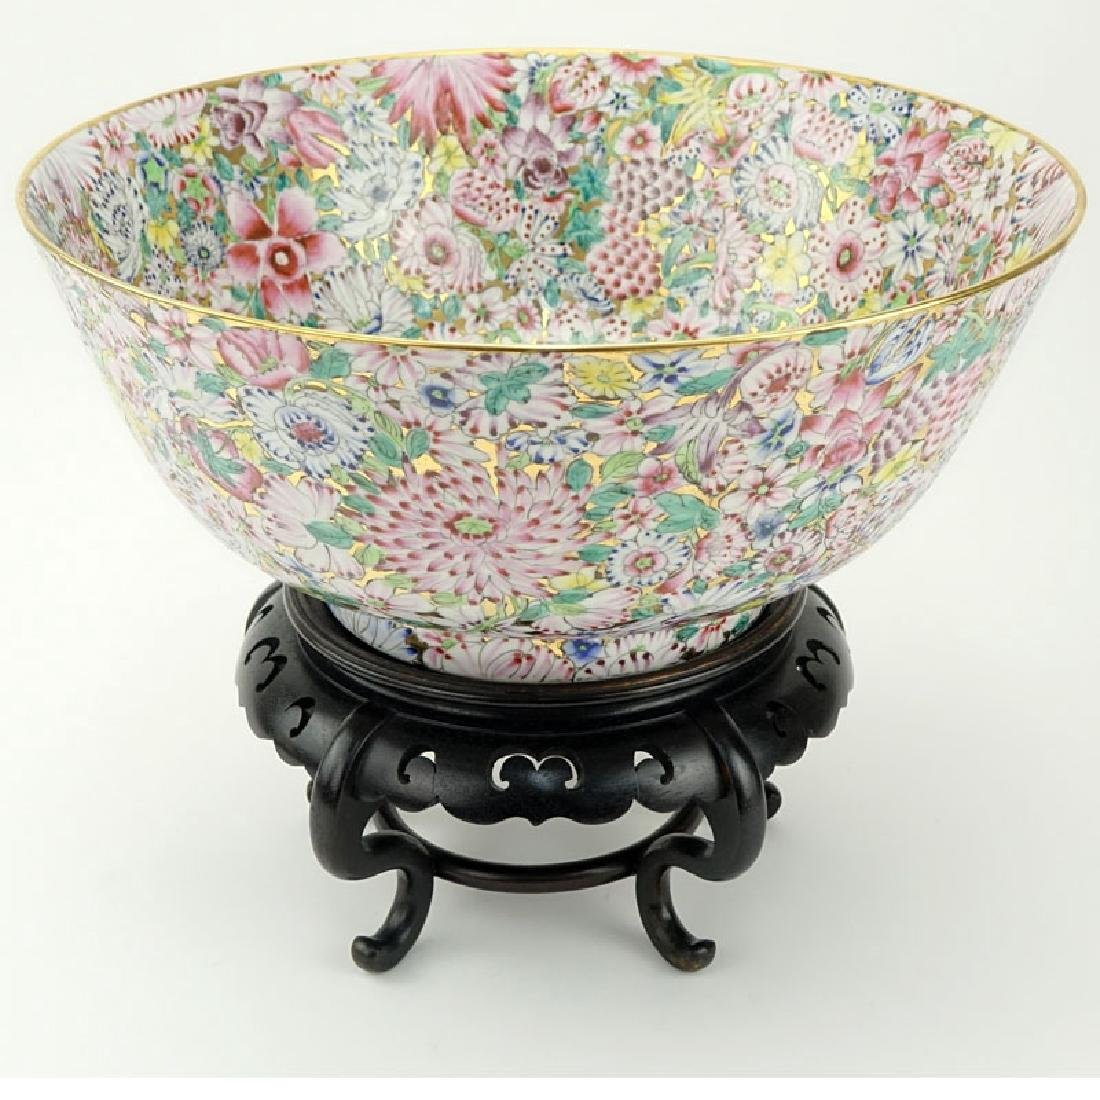 Very Large Chinese Porcelain Bowl On Stand. Decorated